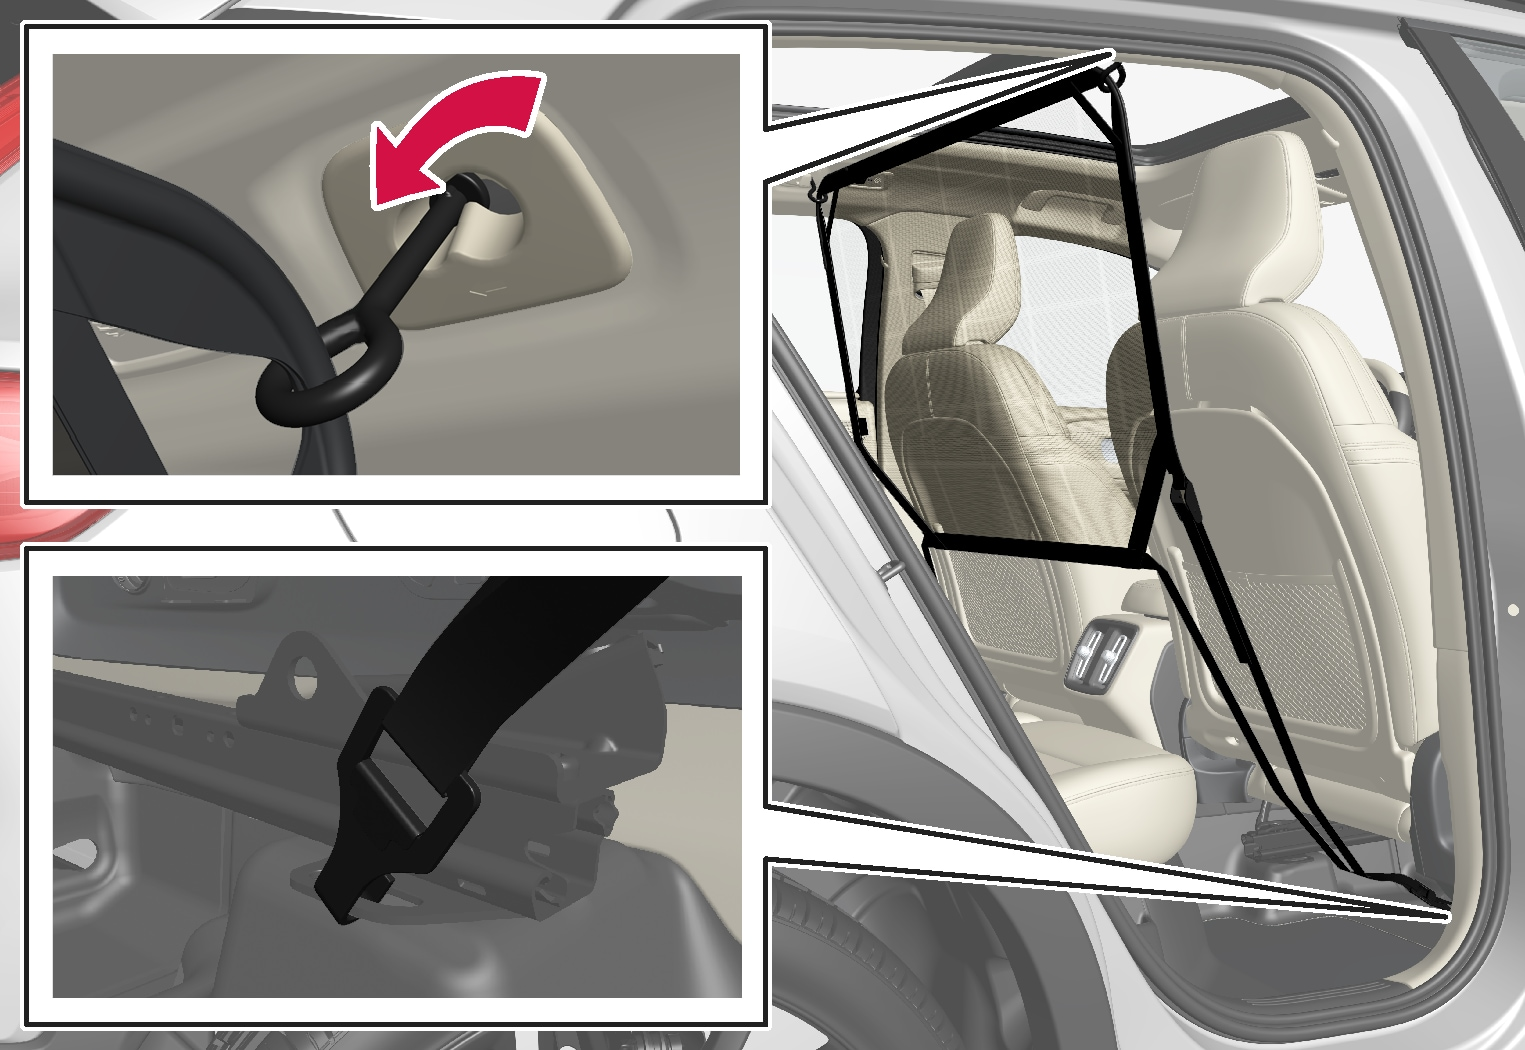 P6-1746-XC40- Safety net front position installation